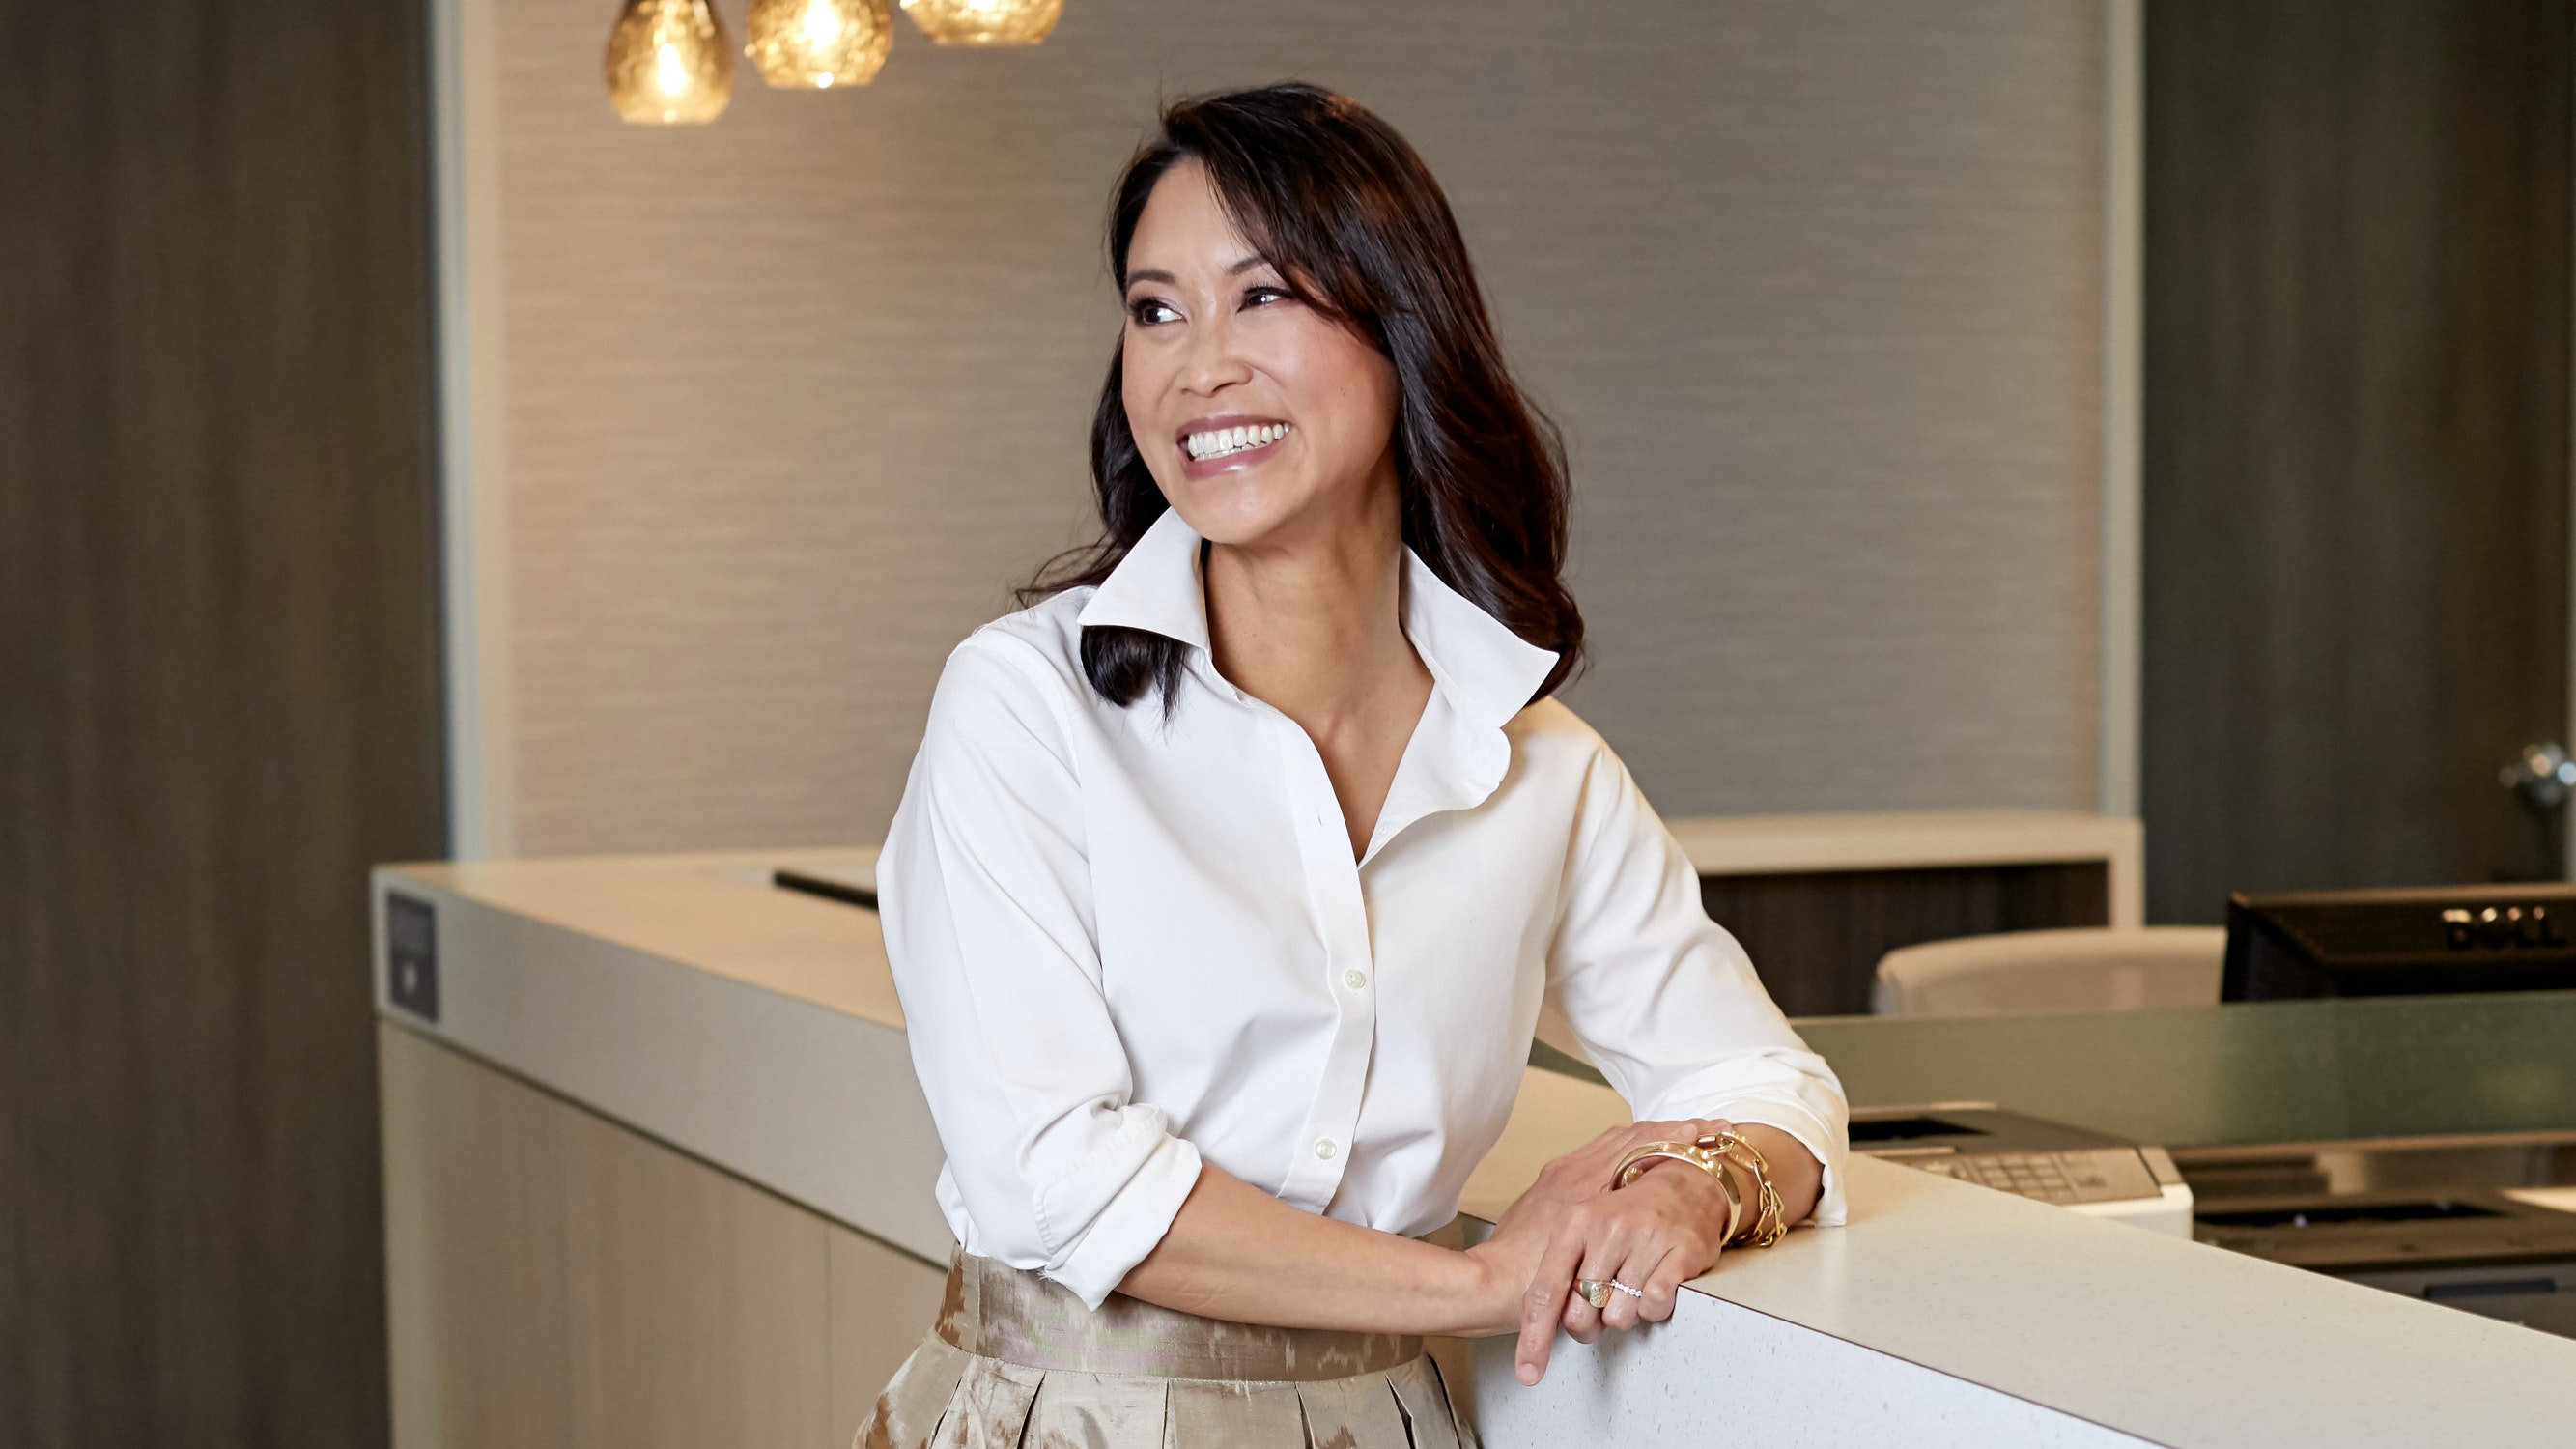 Atlanta Dermatologist Dr. Christine Law on Fresh Eggs, Injectable Filler, and HydraFacials